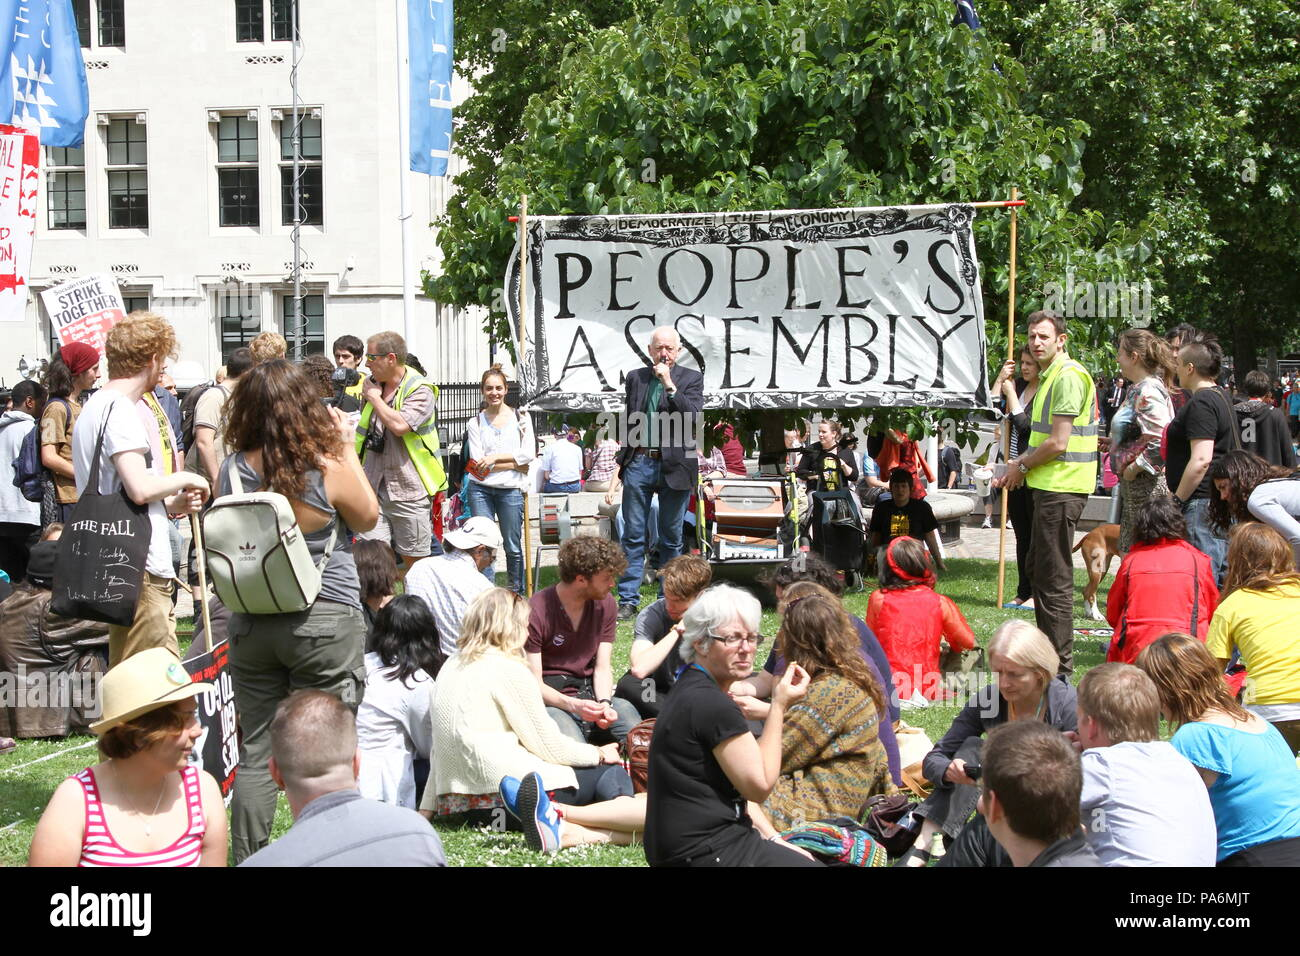 People's Assembly. The People's Assembly gather in the City of Westminster calling for the Democratization of the Economy. - Stock Image